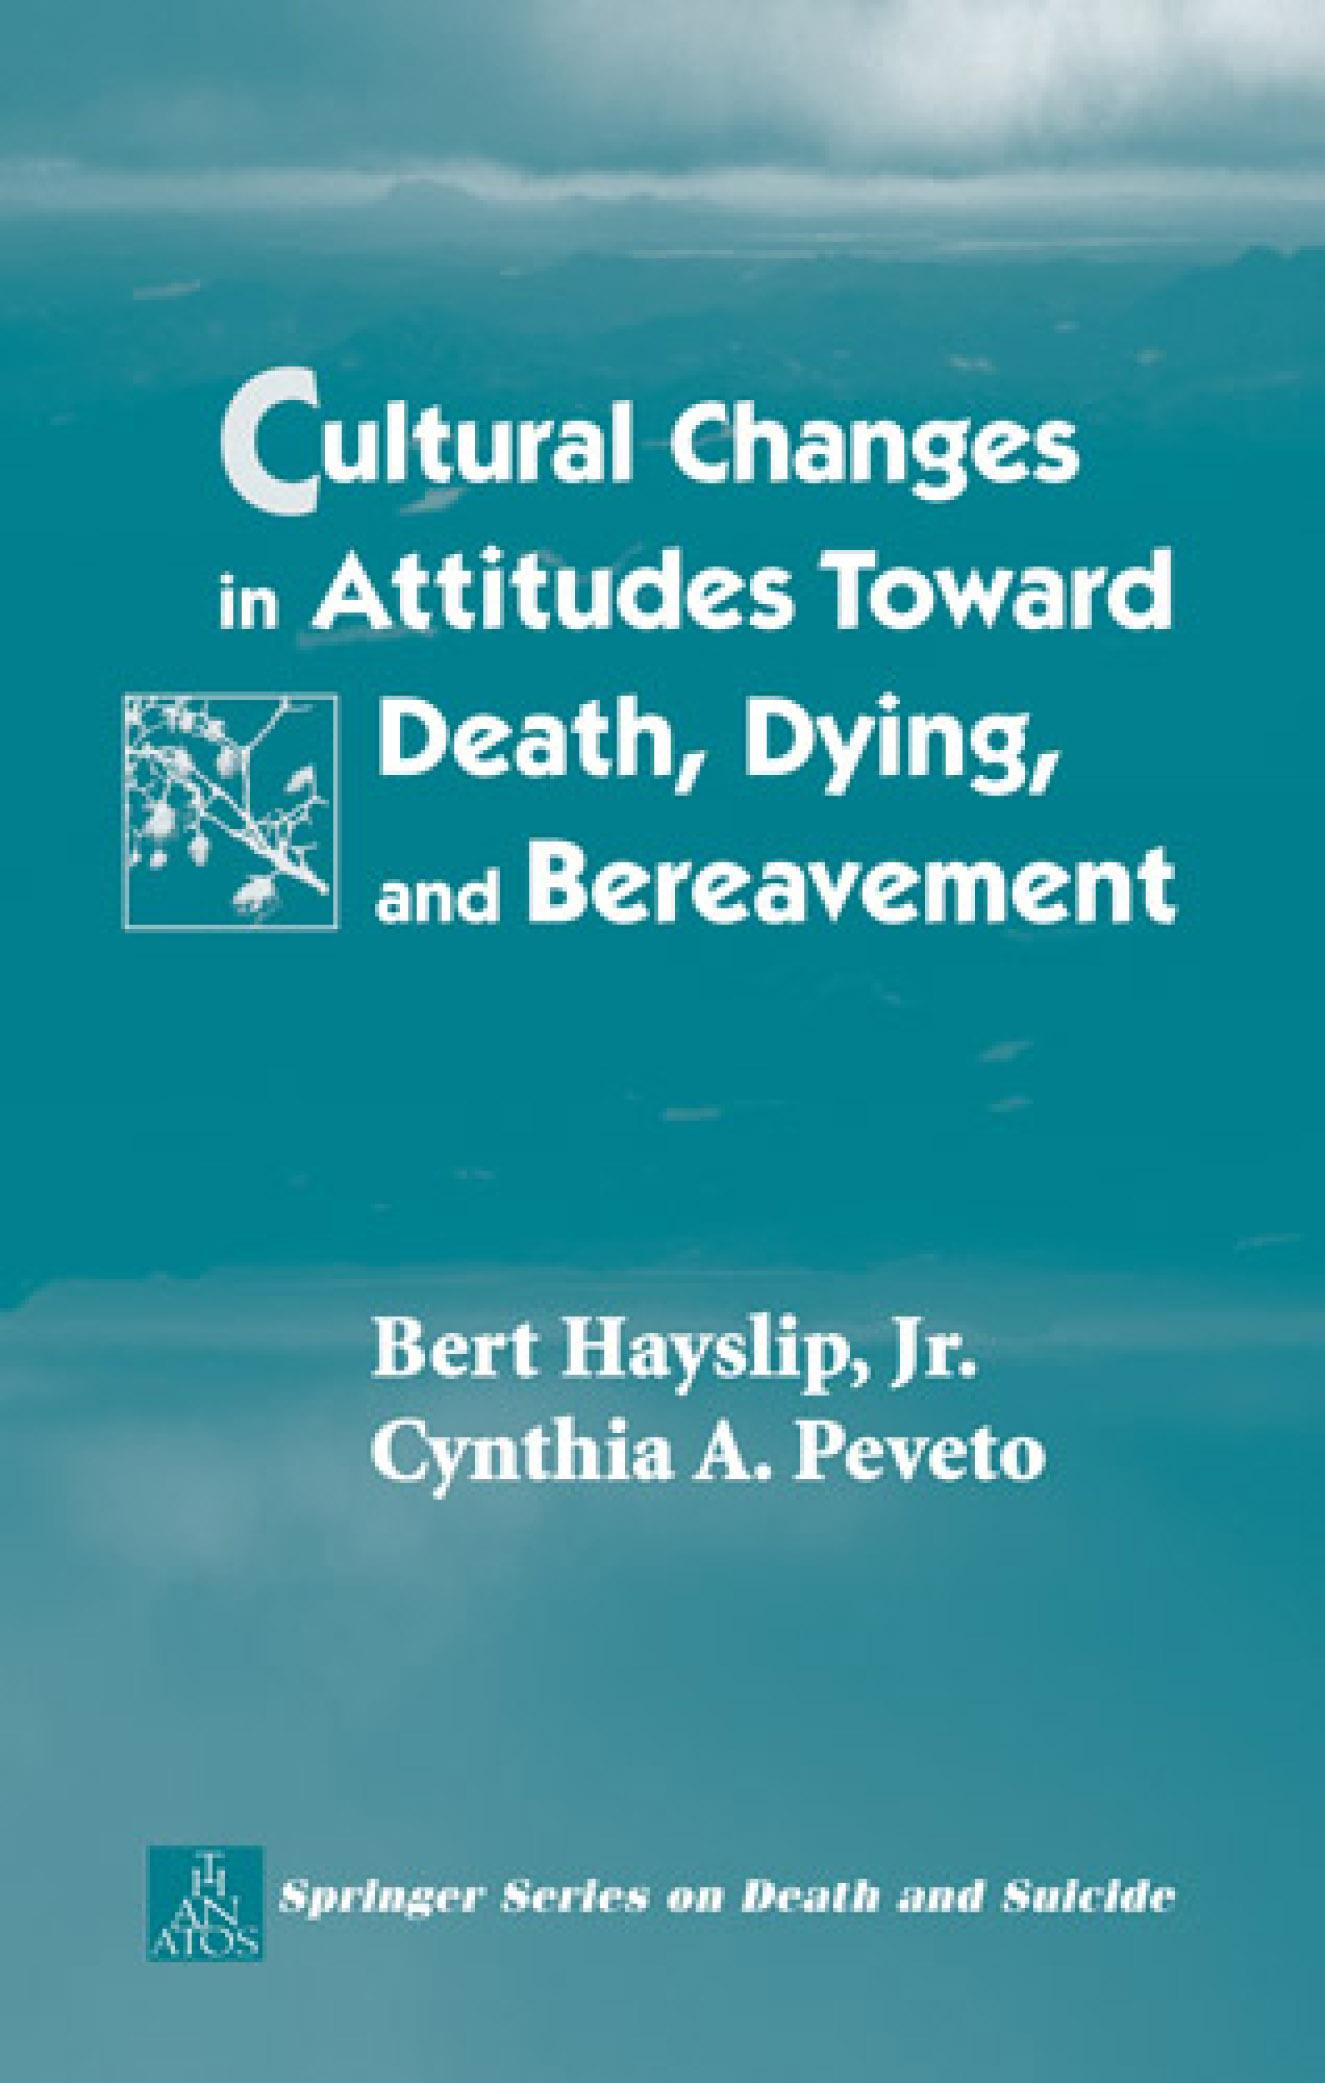 Cultural Changes in Attitudes Toward Death, Dying, and Bereavement. Springer Series on Death and Suicide. EB9780826127976